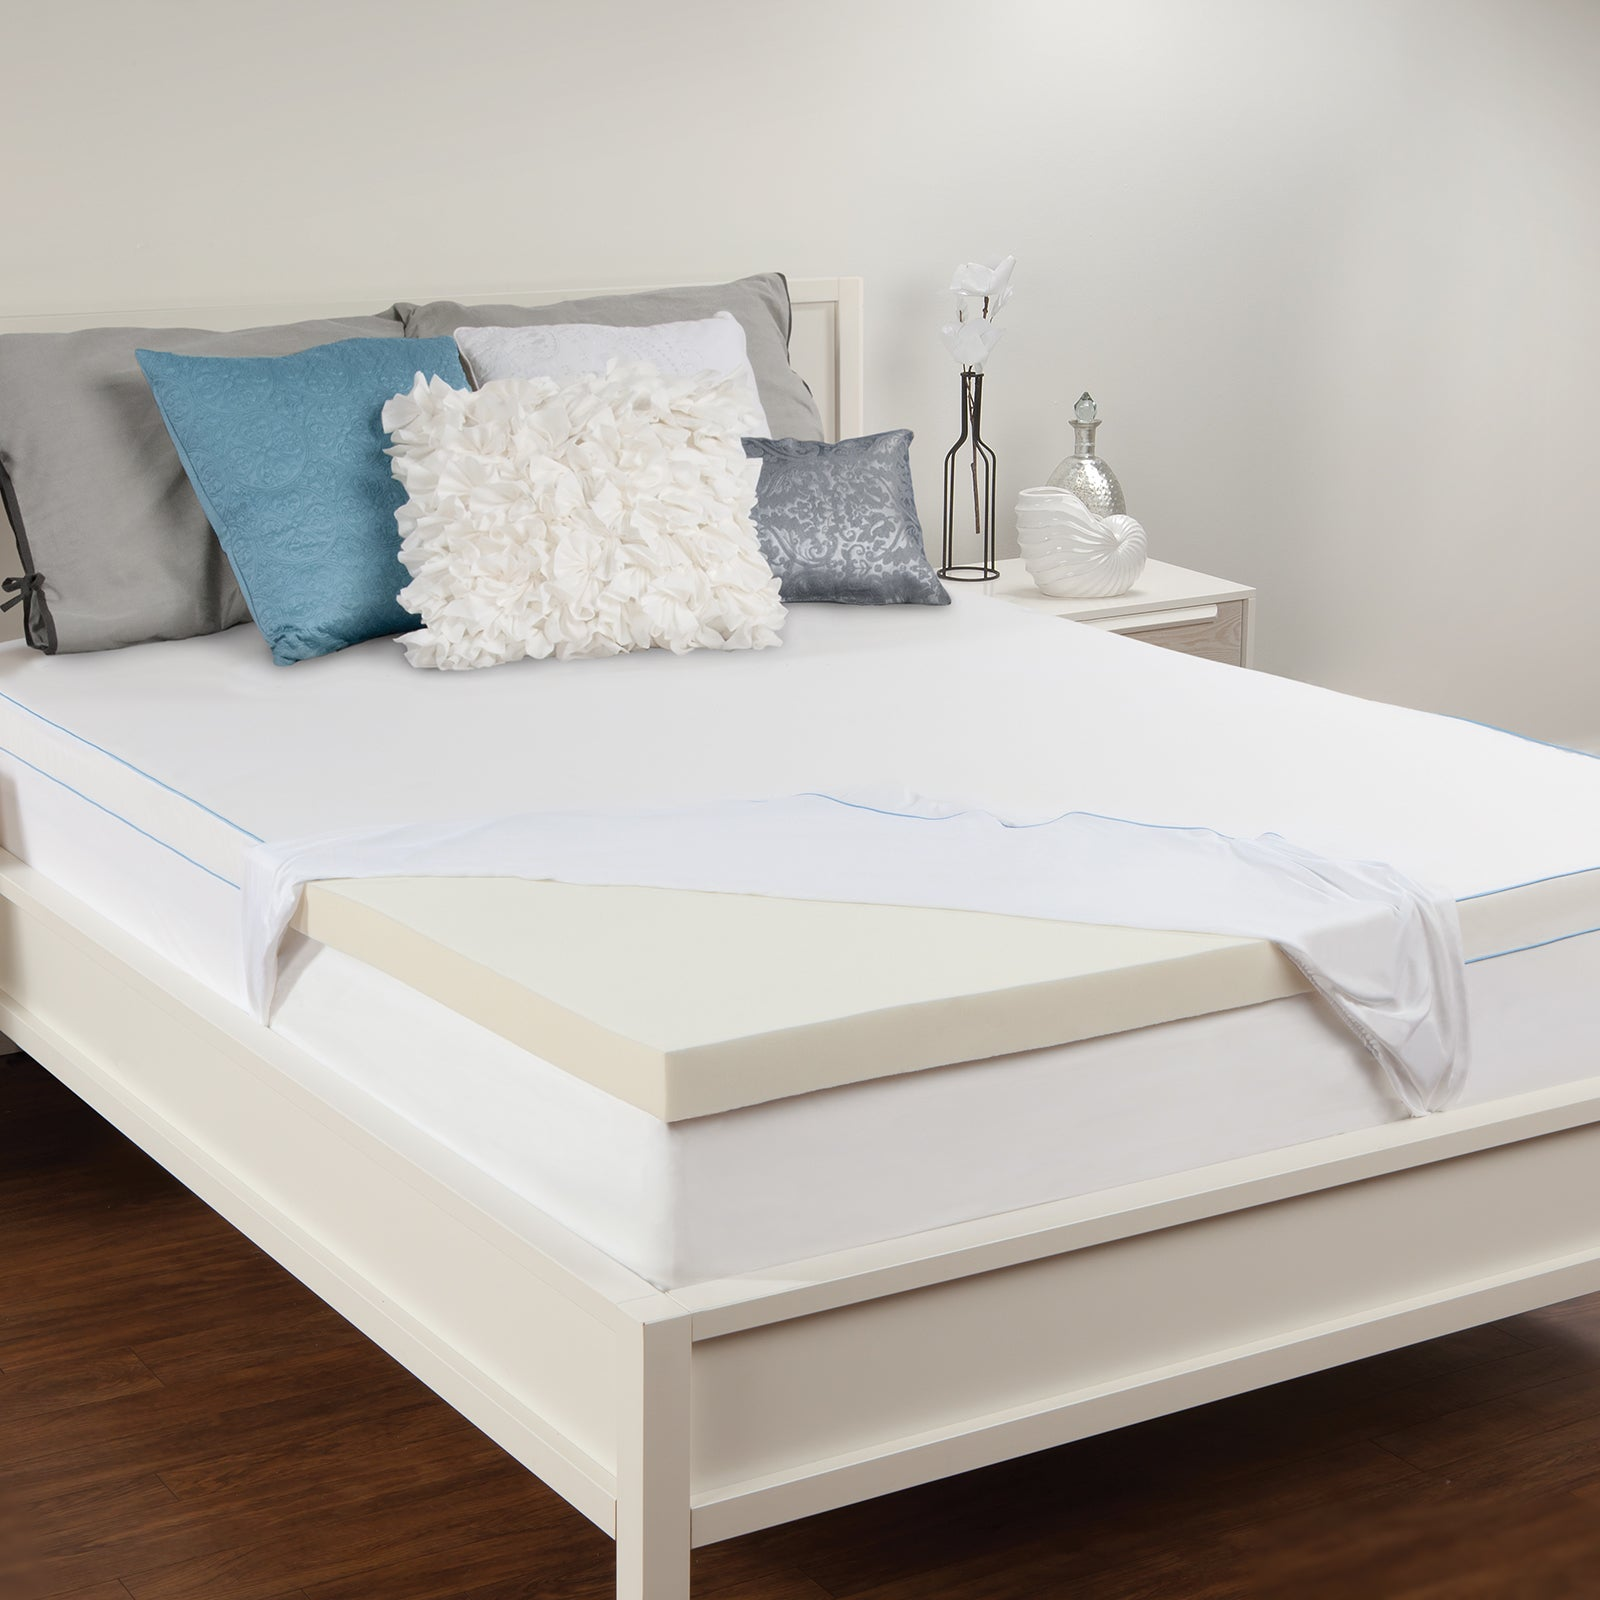 Sealy 3 inch Memory Foam Mattress Topper Free Shipping Today